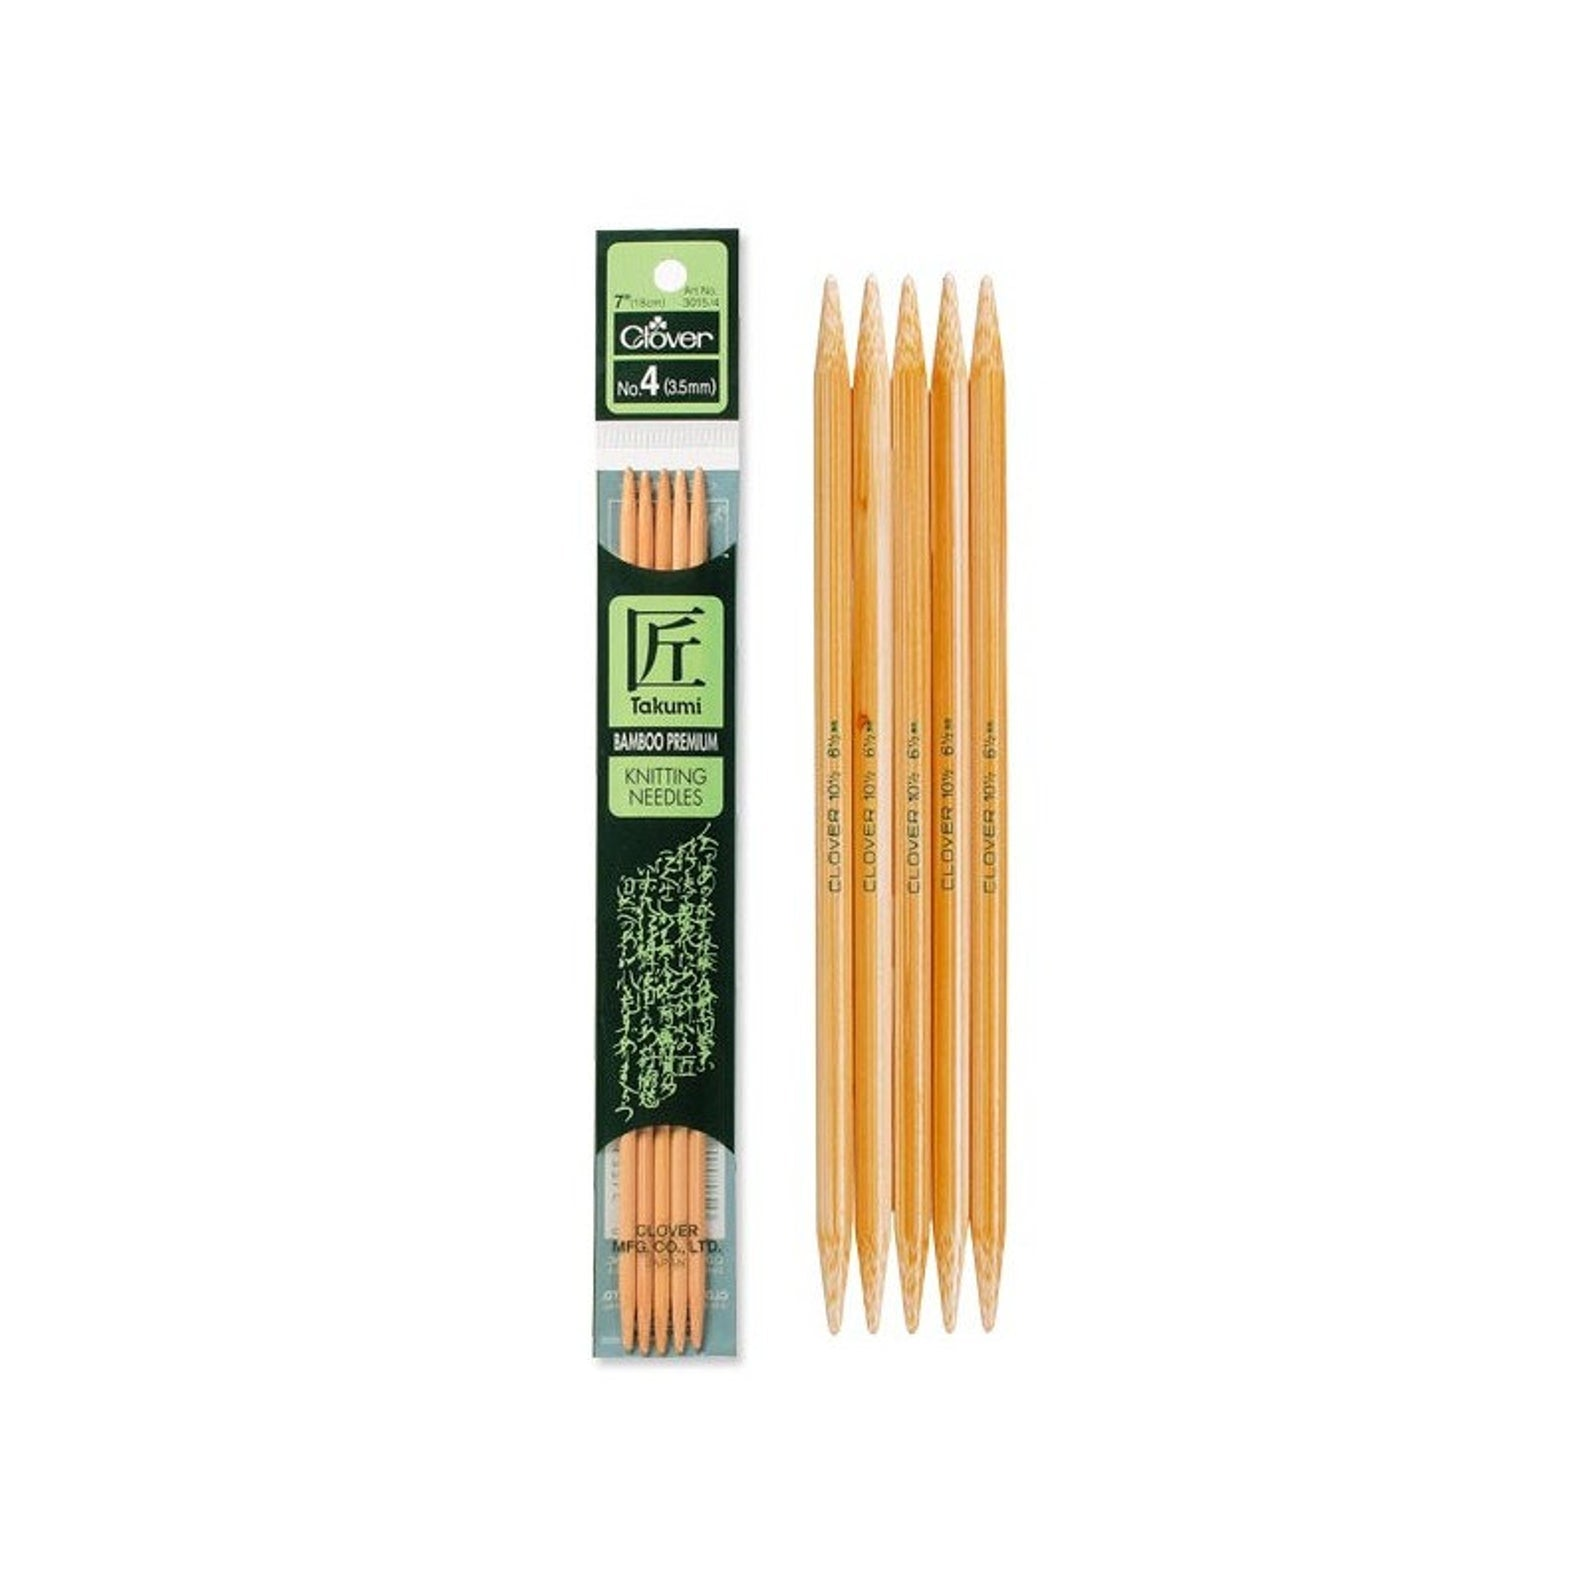 Knitting Needles - Clover - DPNs - Just added!